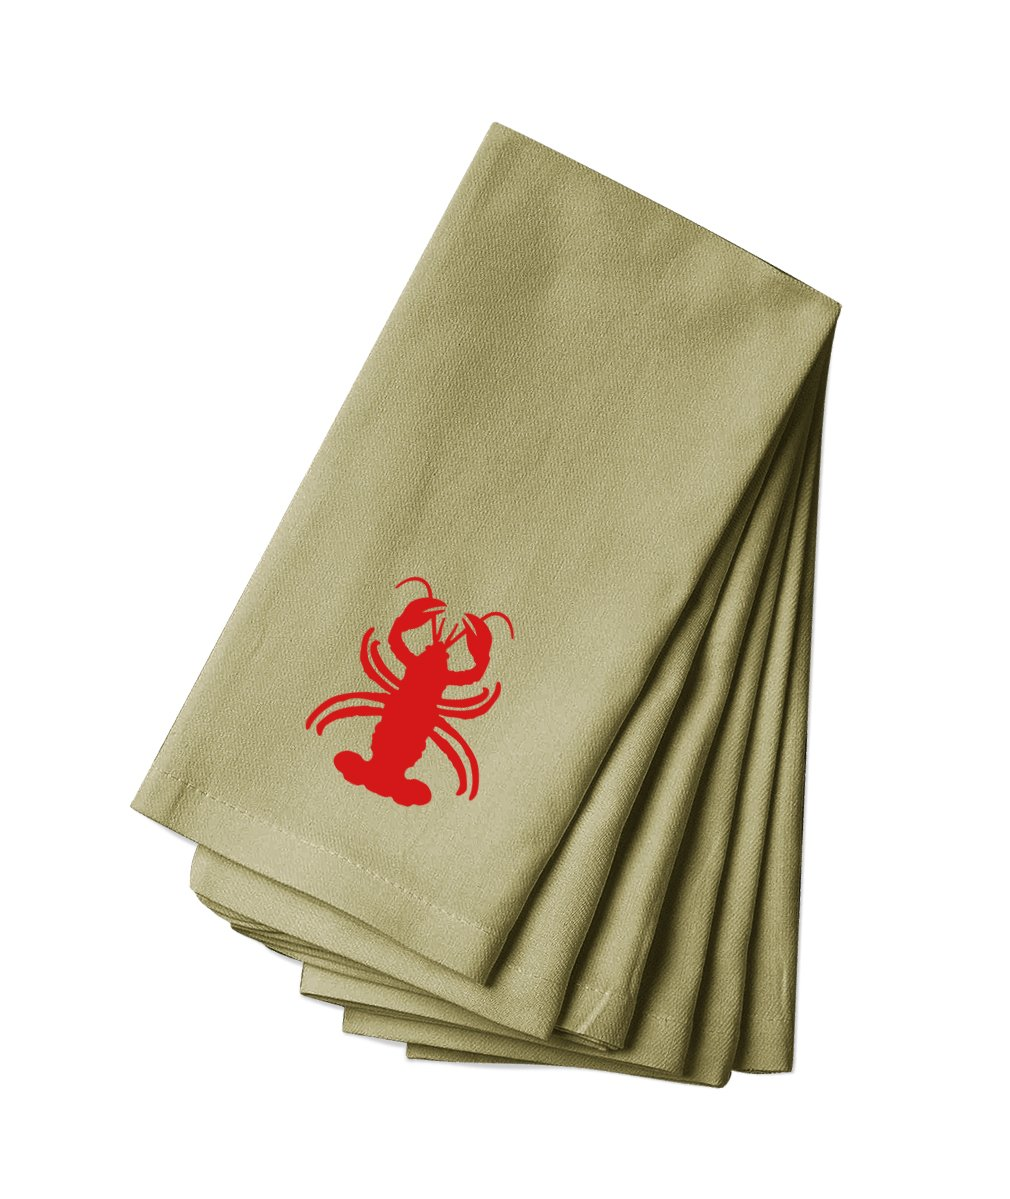 Style in Print Cotton Canvas Dinner Napkin Set Of 4 Lobster Animal Image By